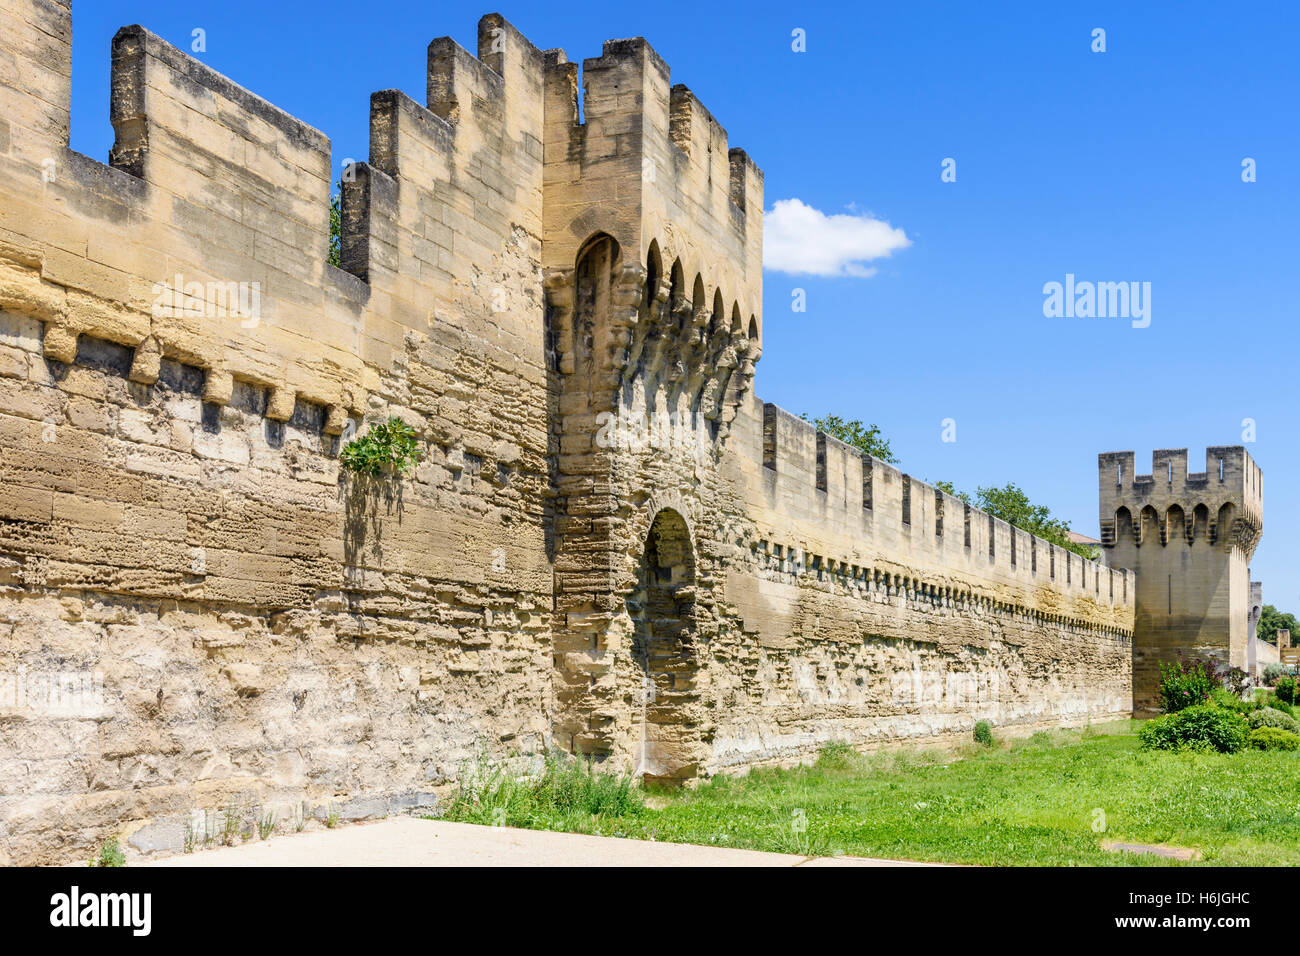 Mur de défense et la tour, partie de la section sud des remparts, Avignon, France Photo Stock